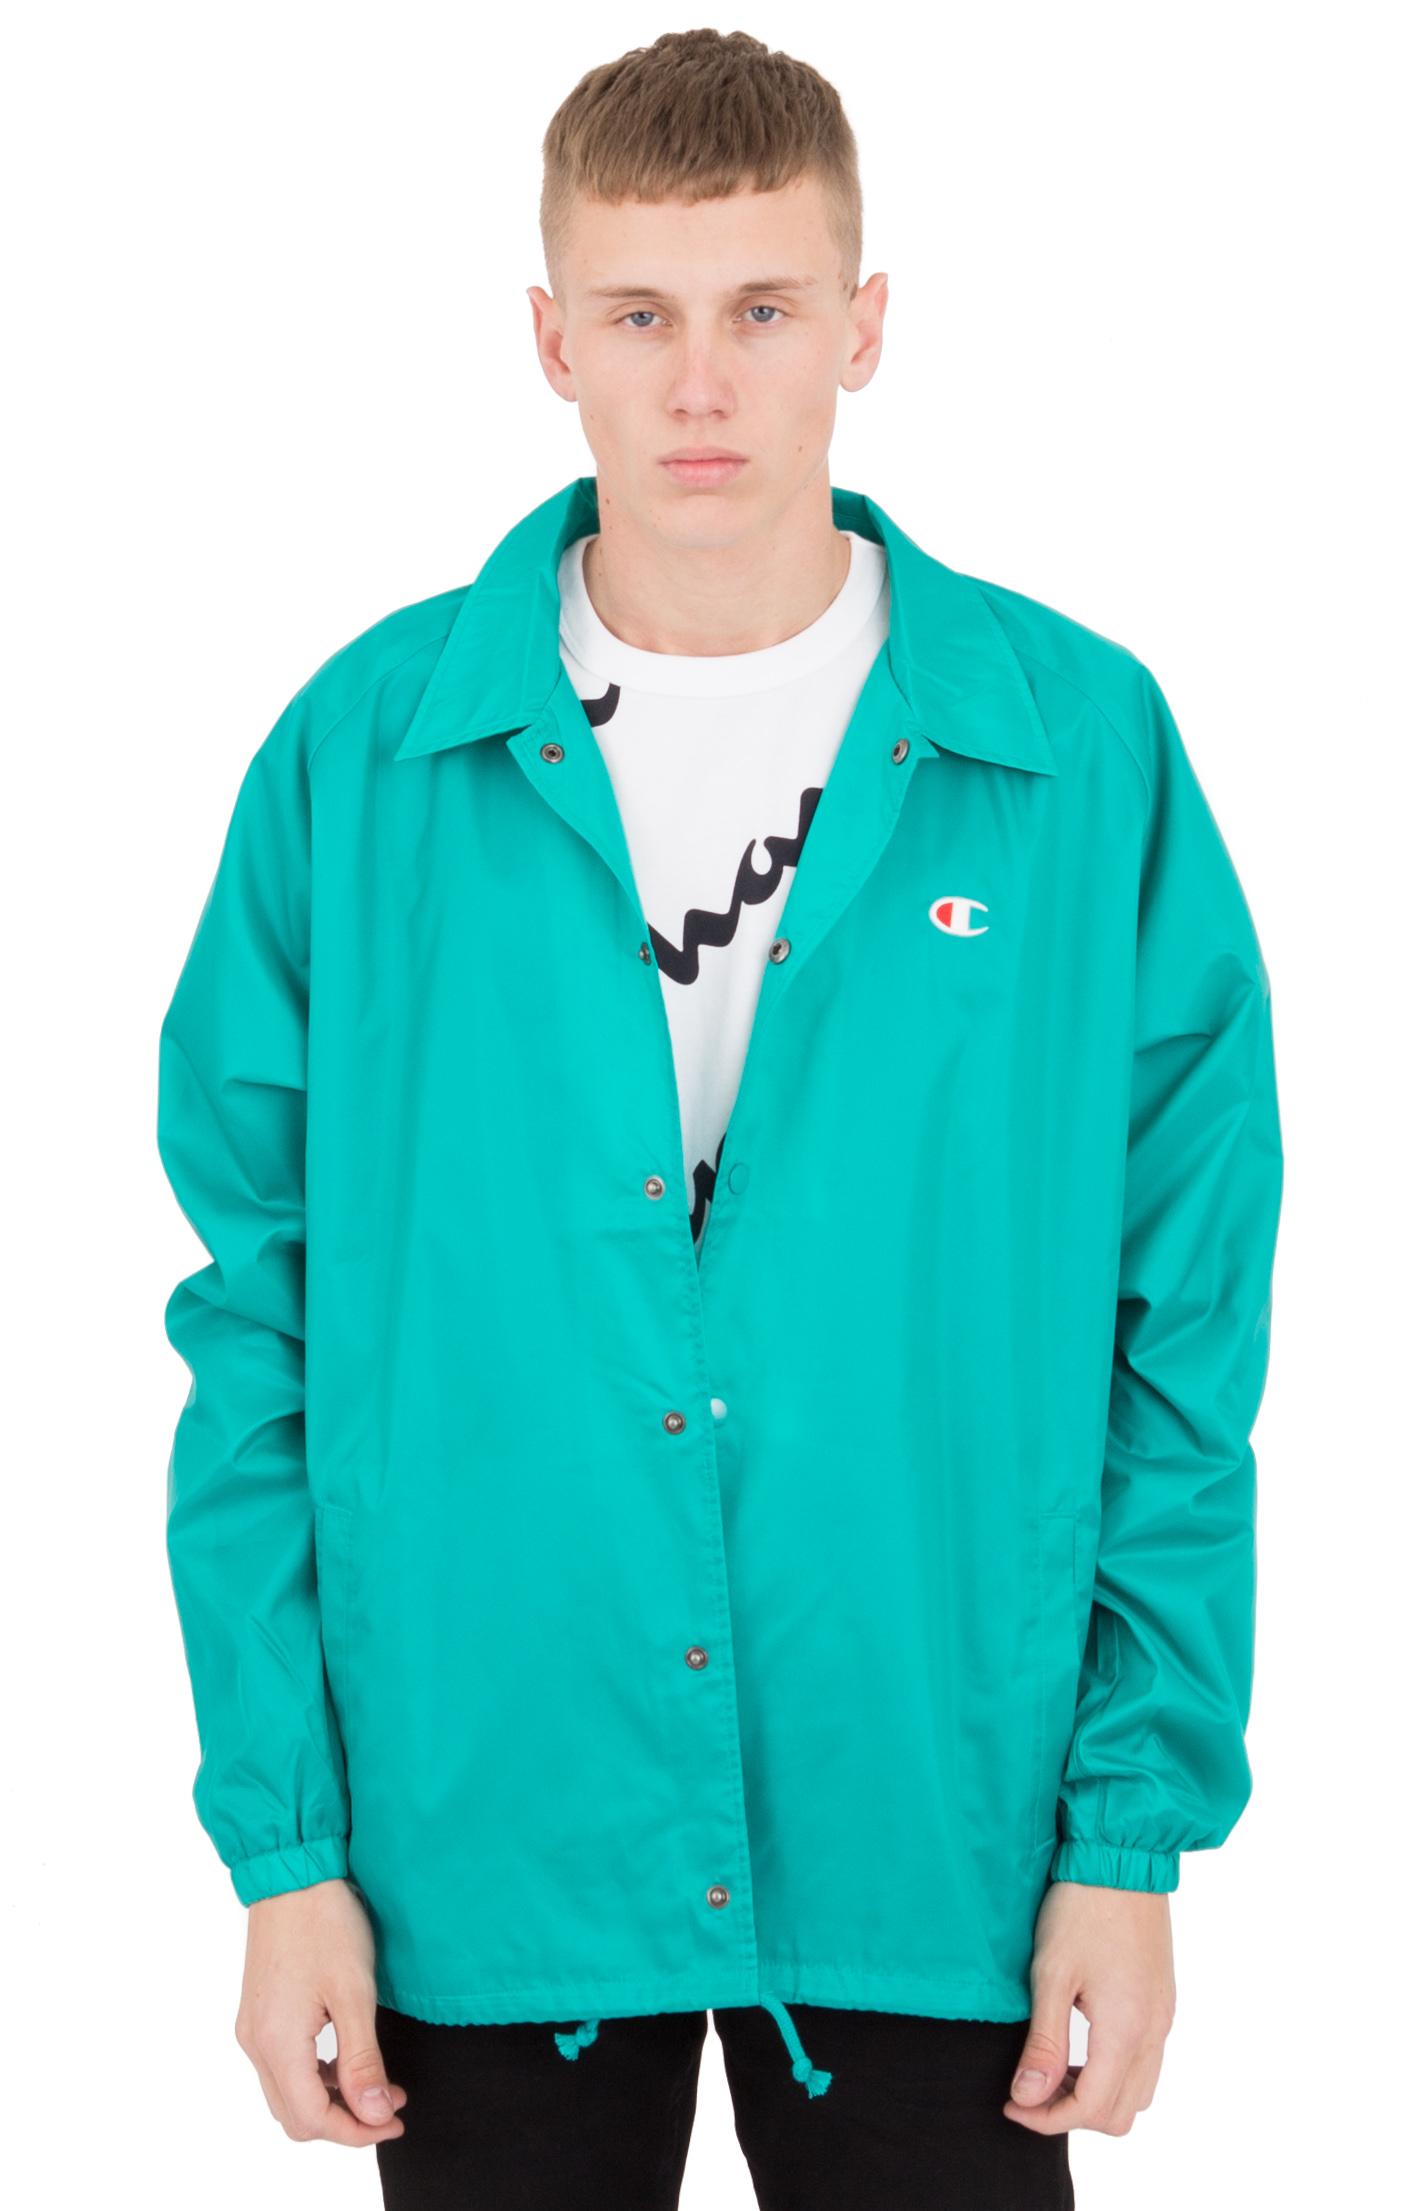 West Breaker Coaches Jacket - Vivid Teal